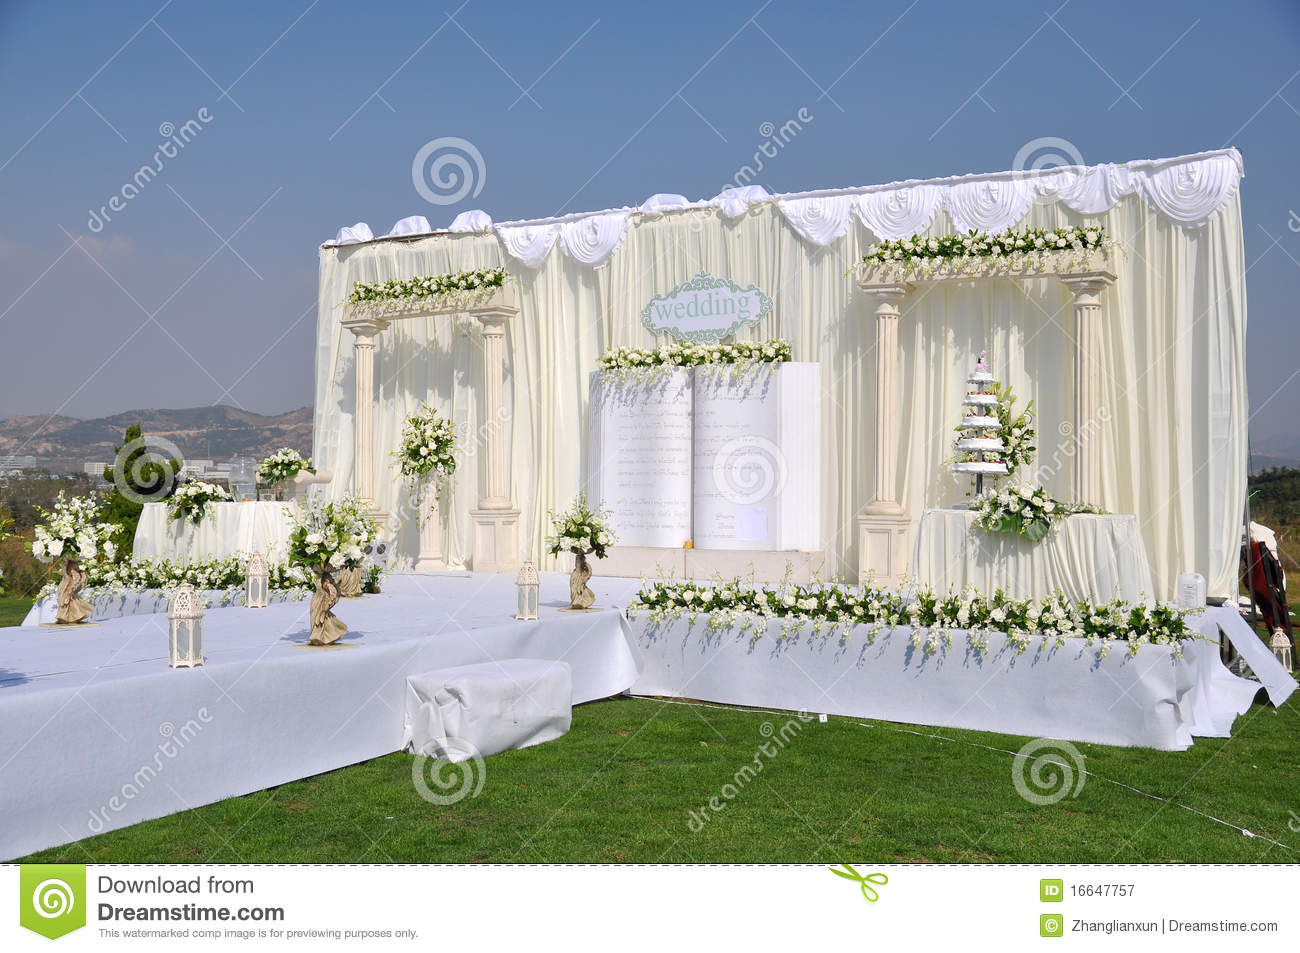 Wedding stage stock images download 3111 photos wedding stage an chinese wedding stage at outdoor photo taken in china royalty free junglespirit Gallery